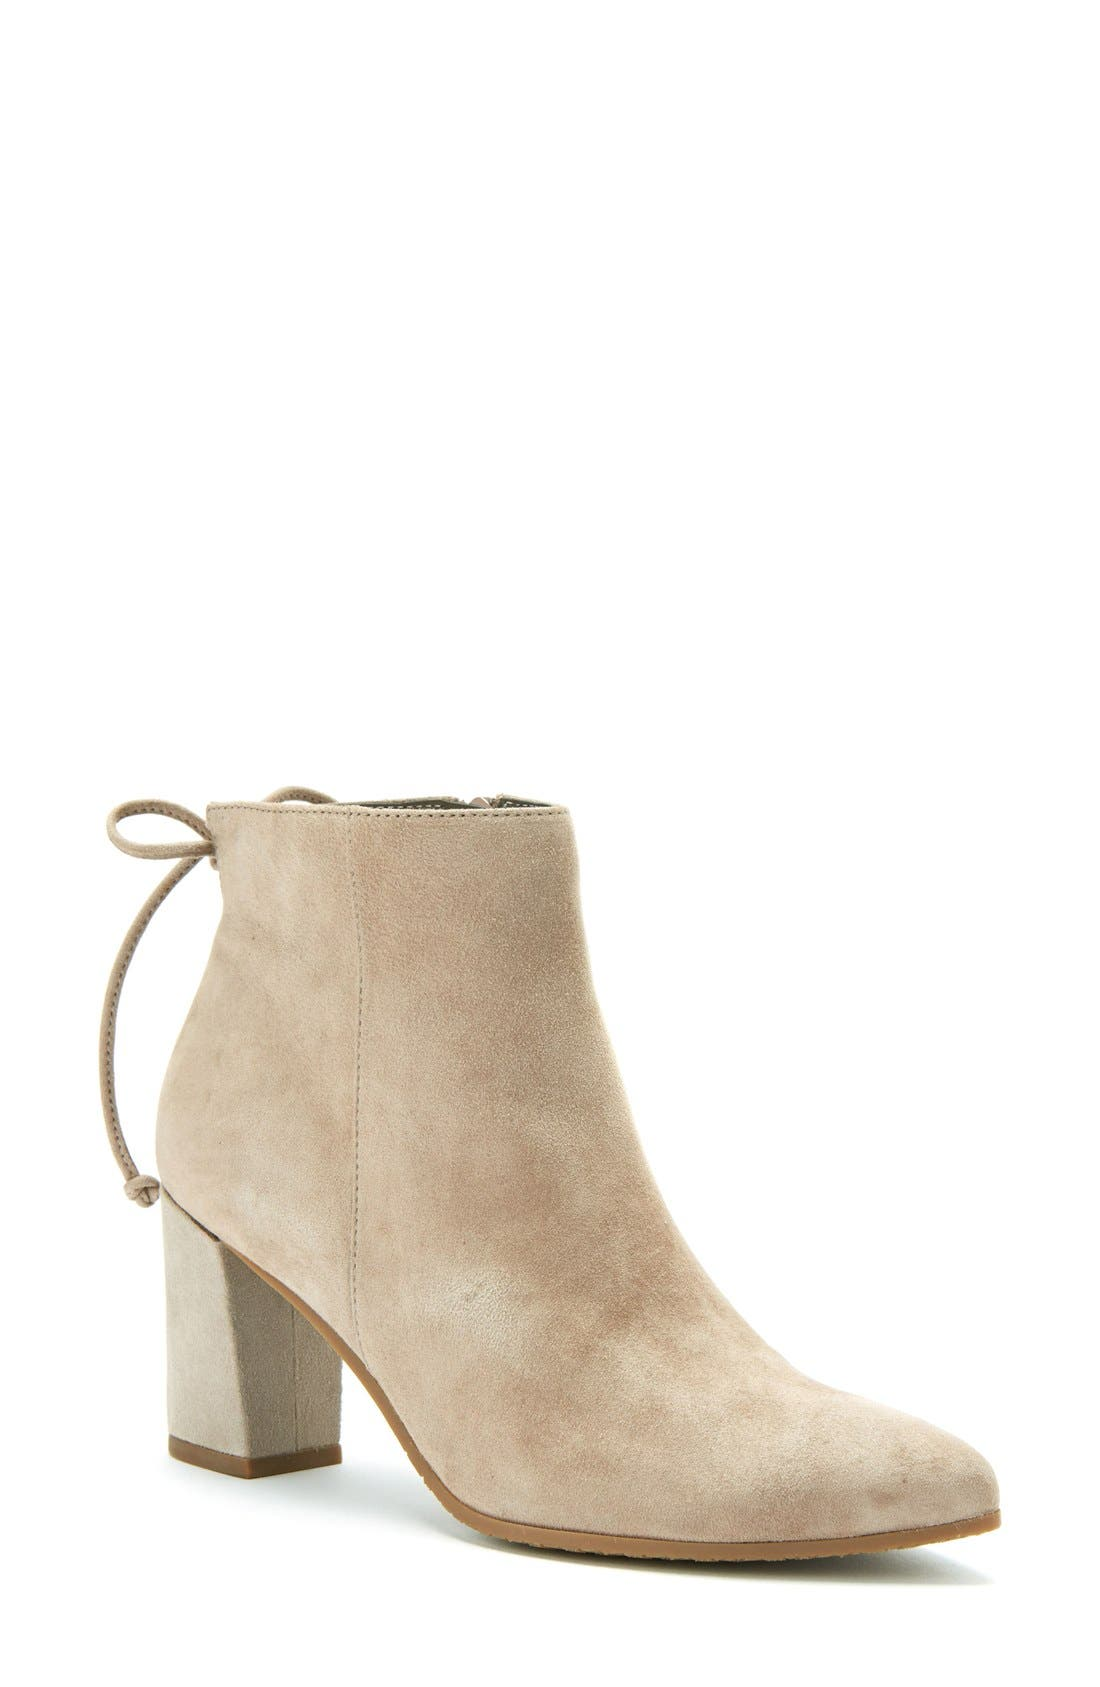 Tiana Waterproof Pointy Toe Bootie,                         Main,                         color, Taupe Suede